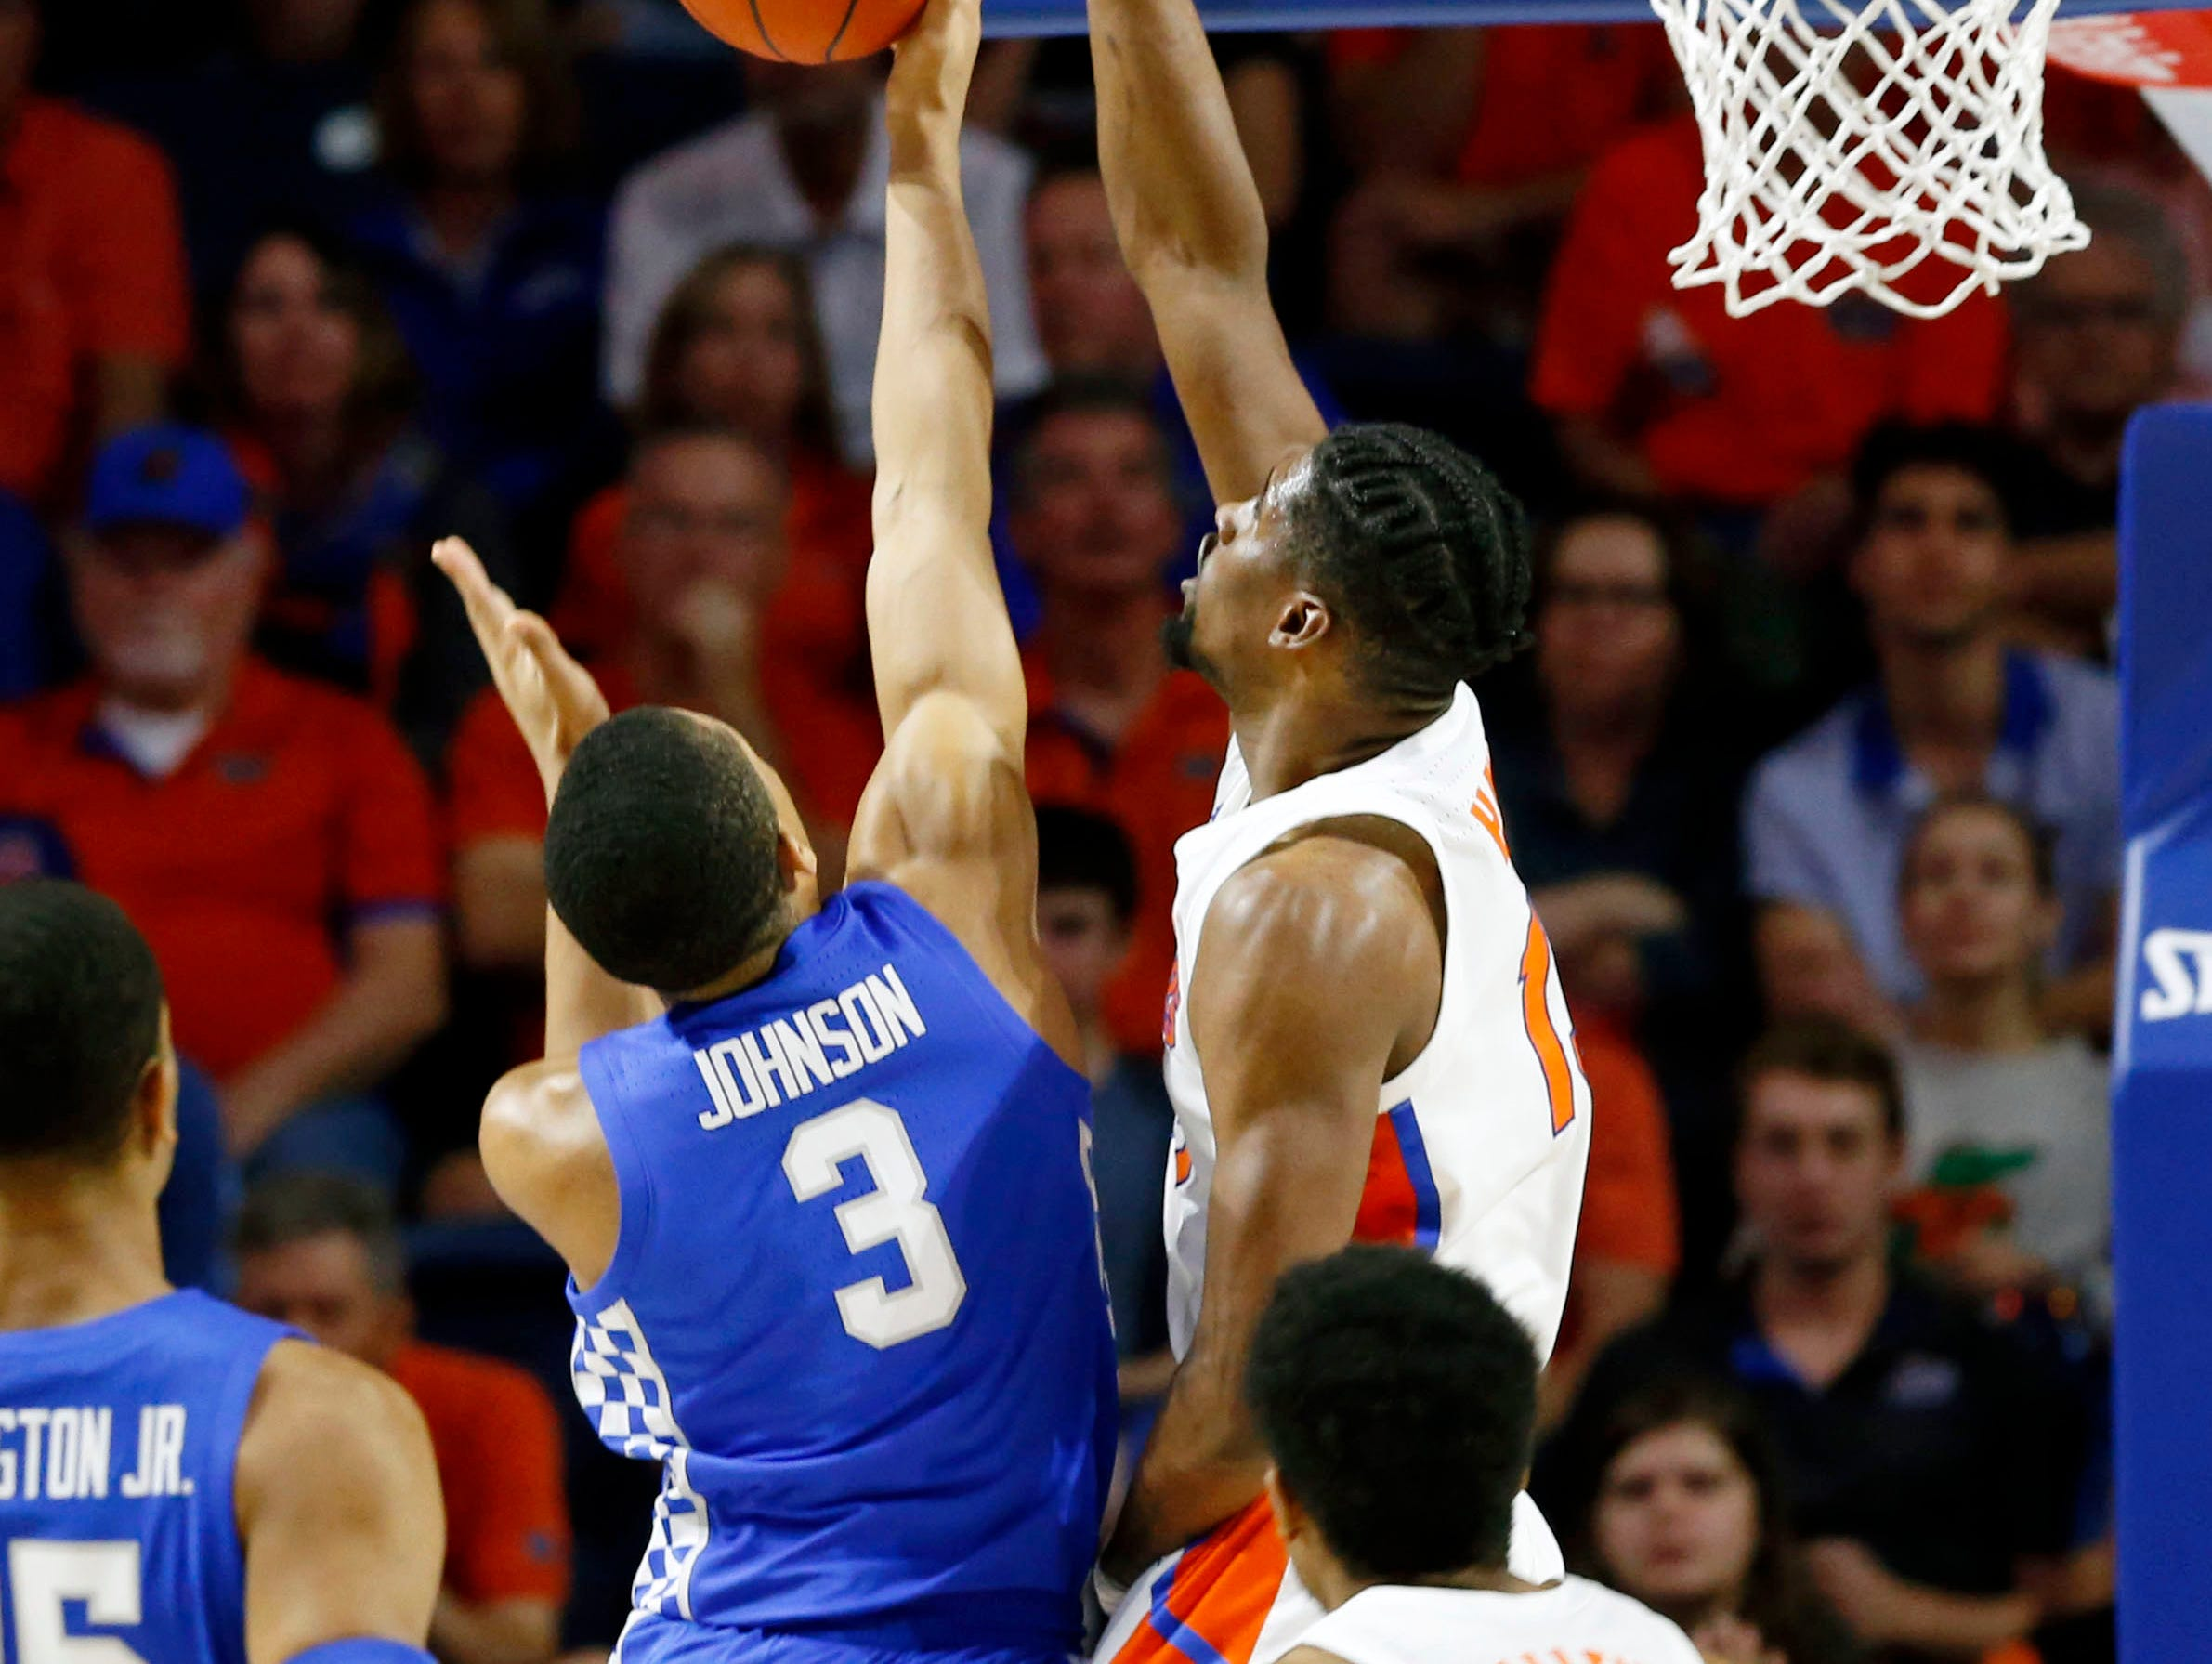 Florida Gators center Kevarrius Hayes (13) blocks Kentucky Wildcats guard Keldon Johnson (3) shot  during the first half at Exactech Arena in Gainesville, Florida, on Saturday, Feb. 2, 2019.